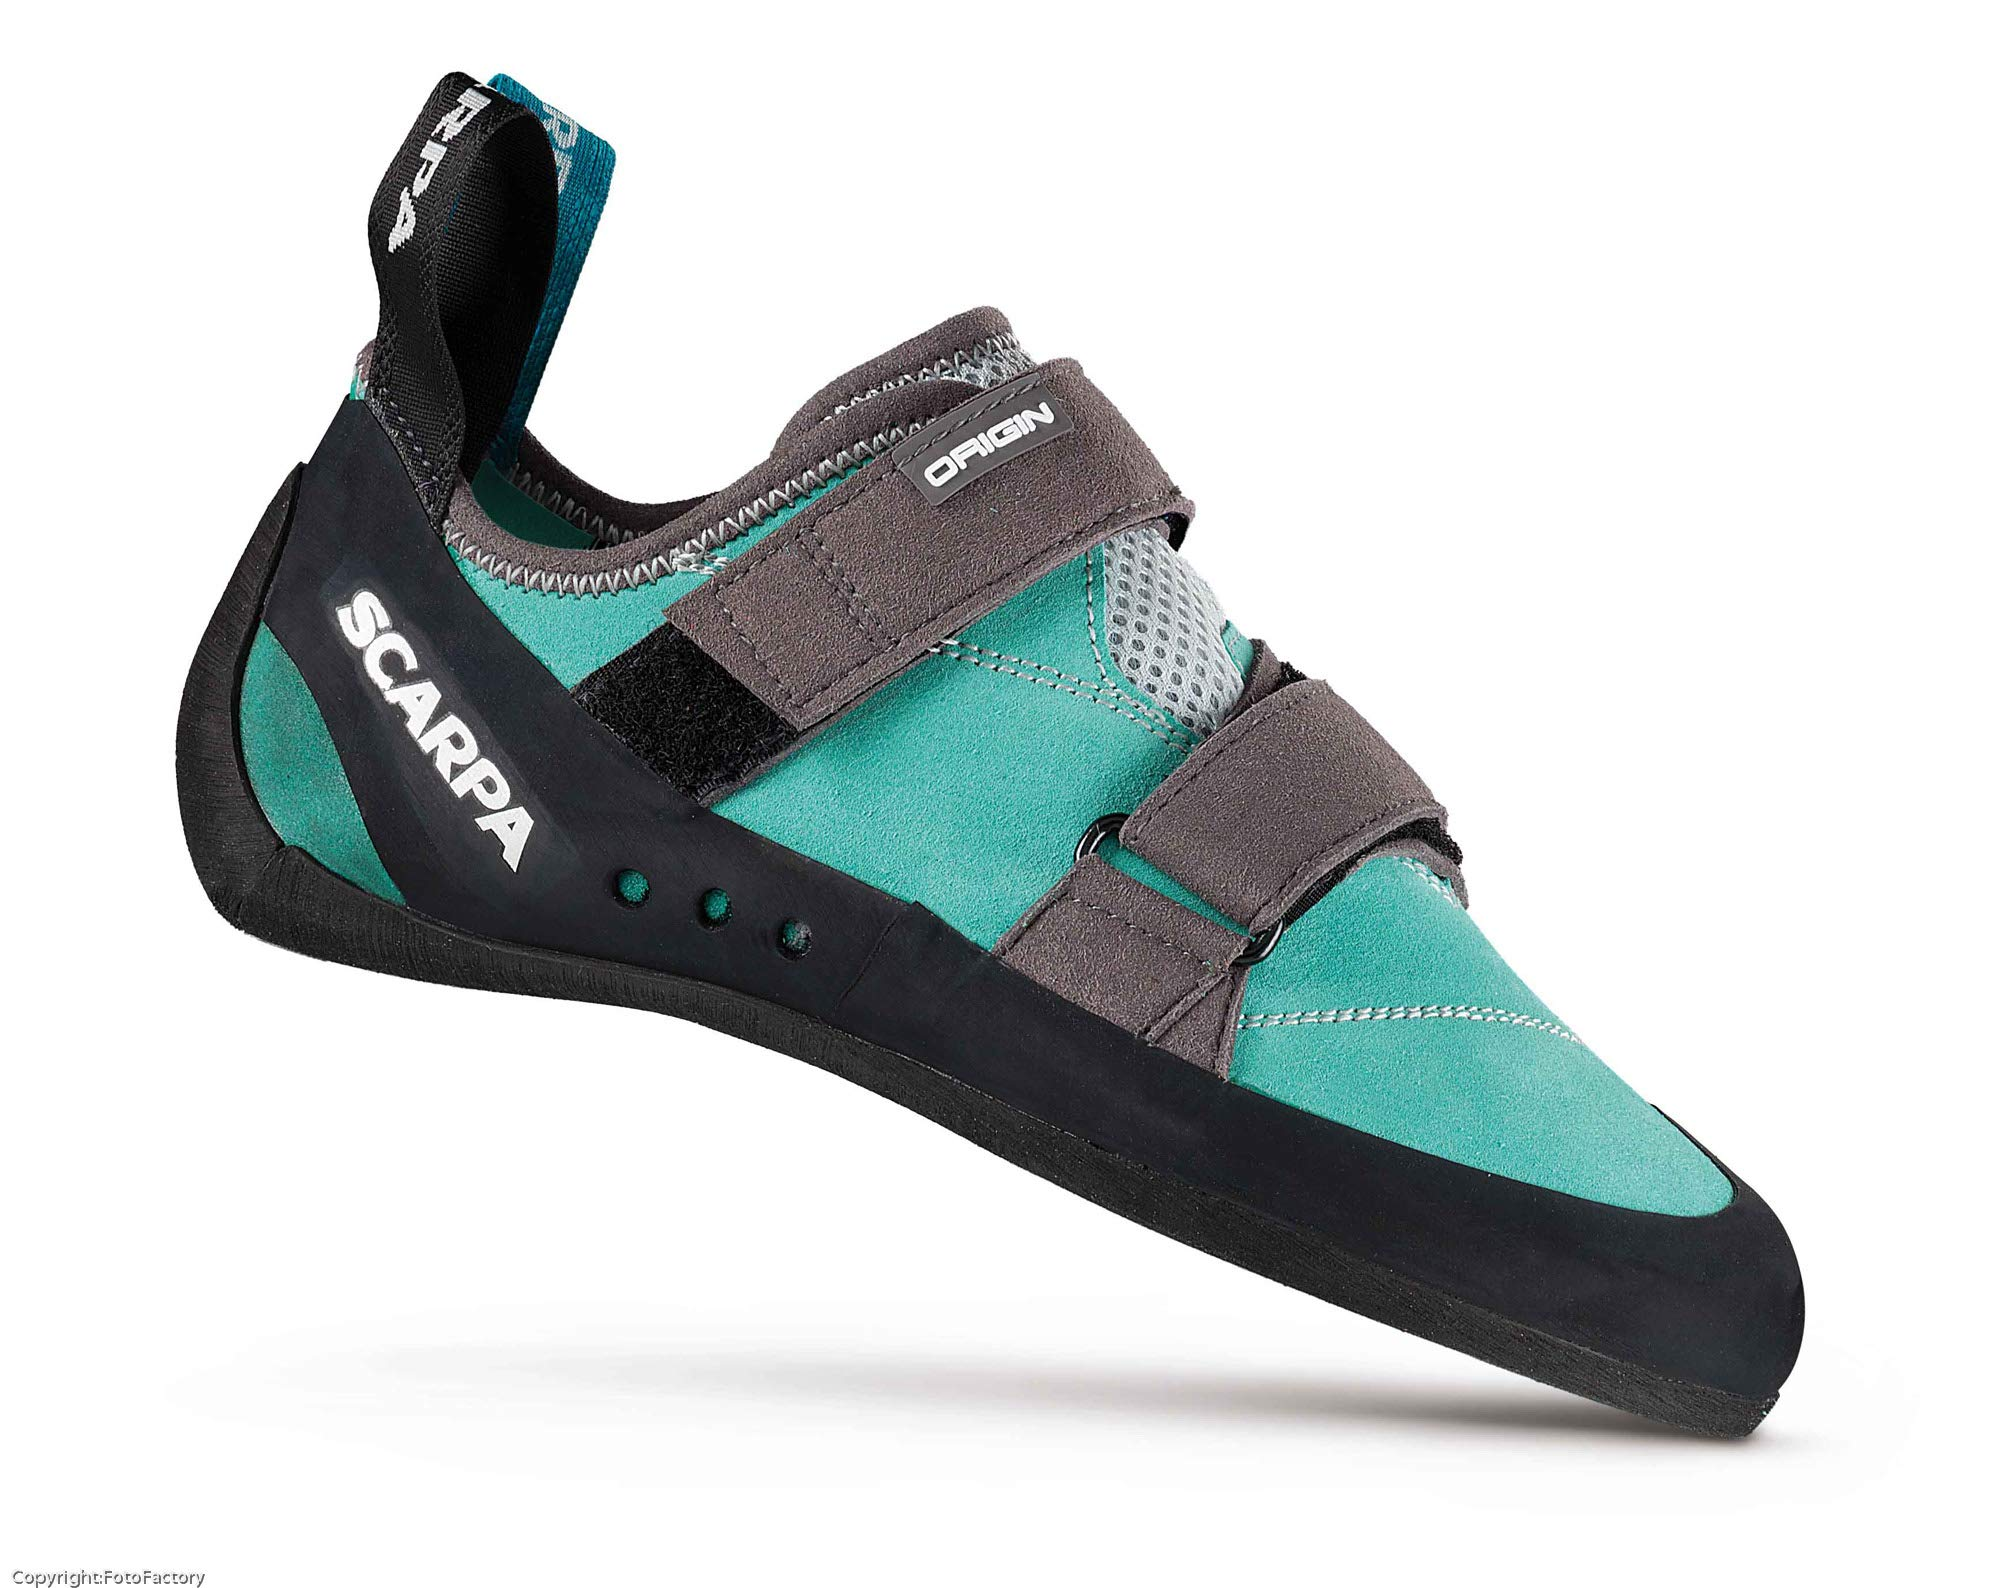 SCARPA Women's Origin WMN Climbing Shoe, Green Blue/Smoke, 38 EU/7 M US by SCARPA